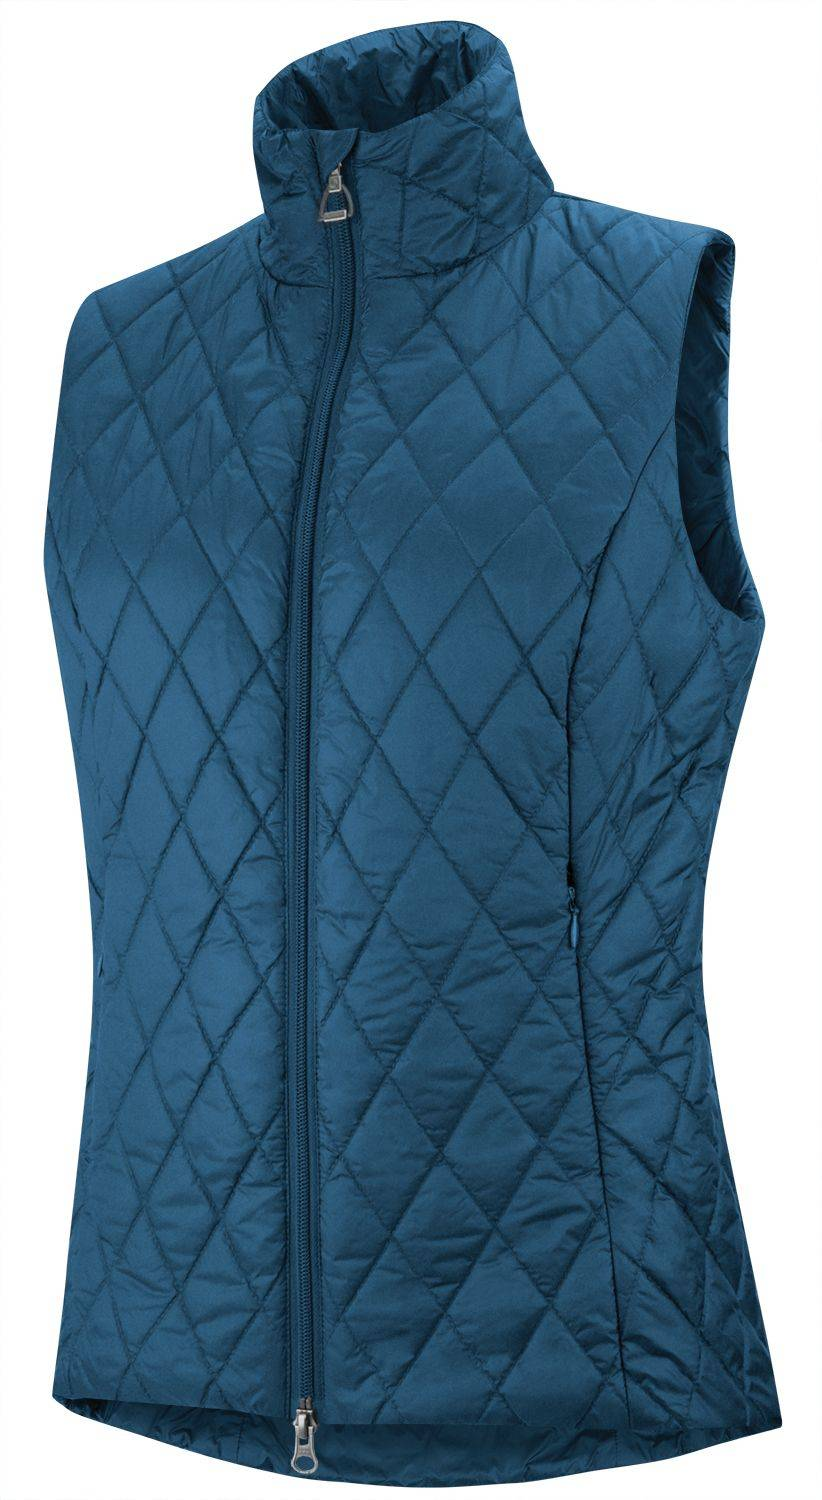 Irideon Ladies' Harley Quilted Vest